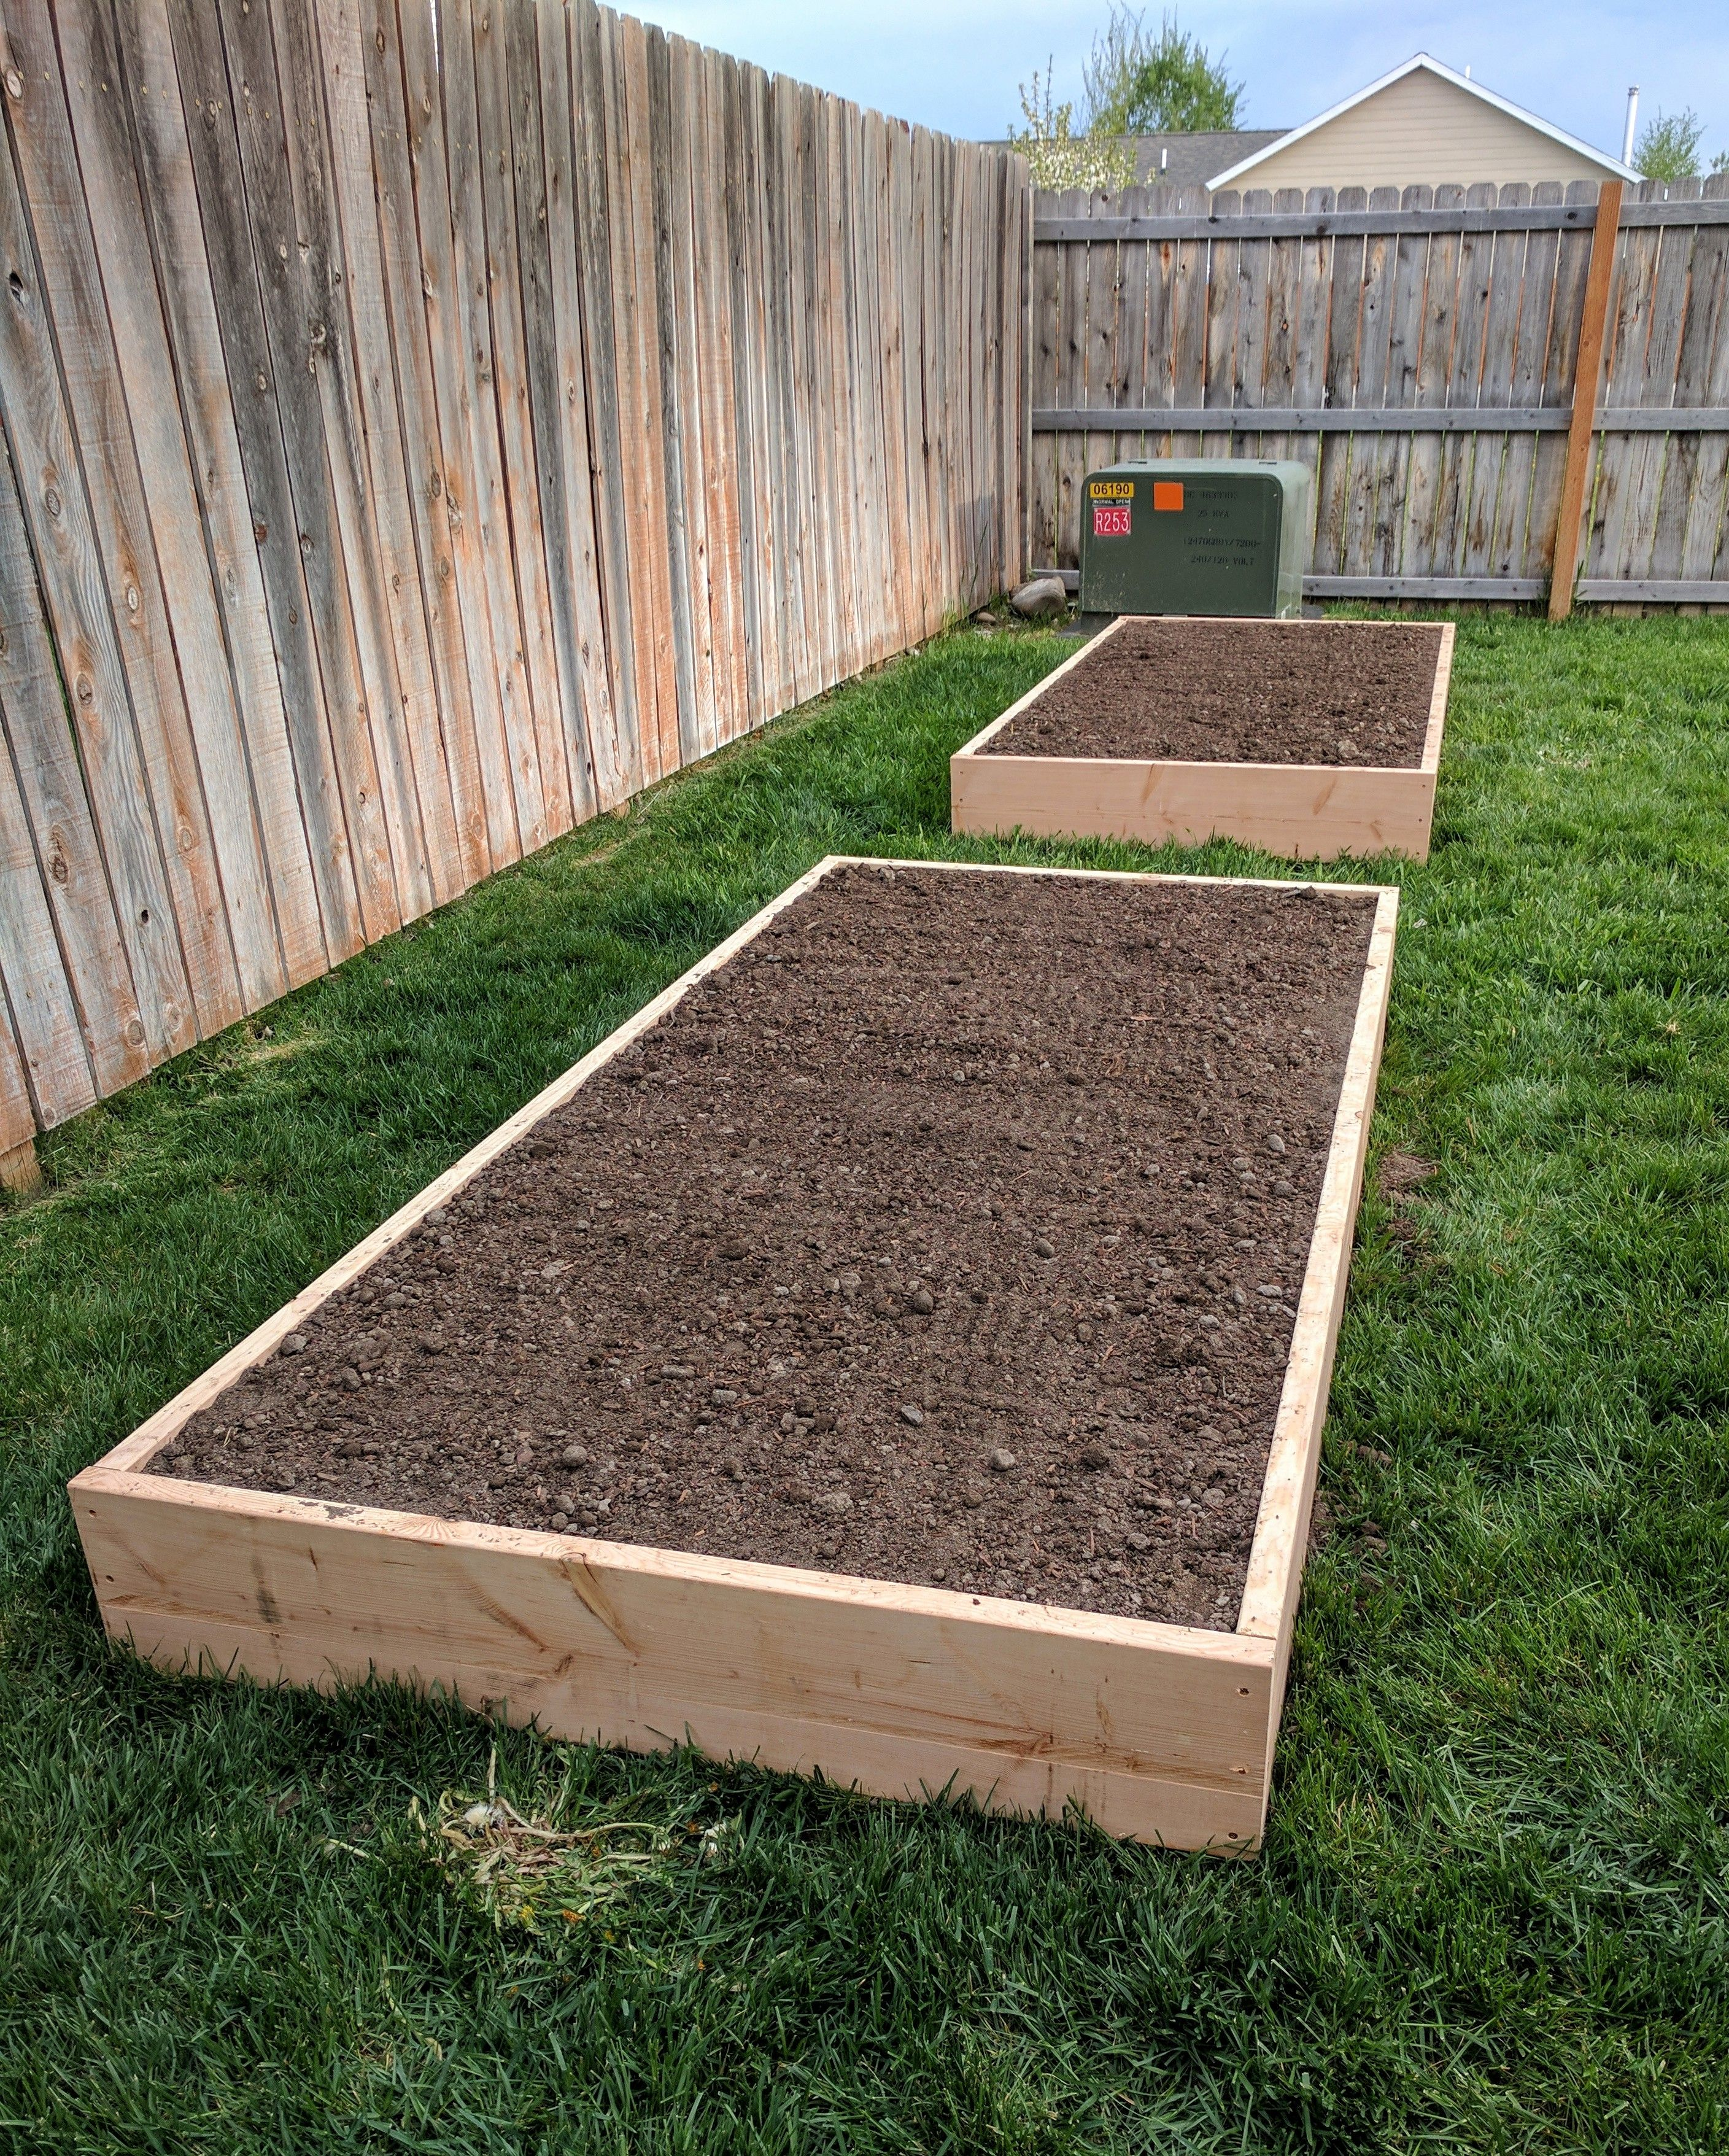 How To Build Raised Garden Beds An Easy Diy Design Diy Raised Garden Building A Raised Garden Building Raised Garden Beds